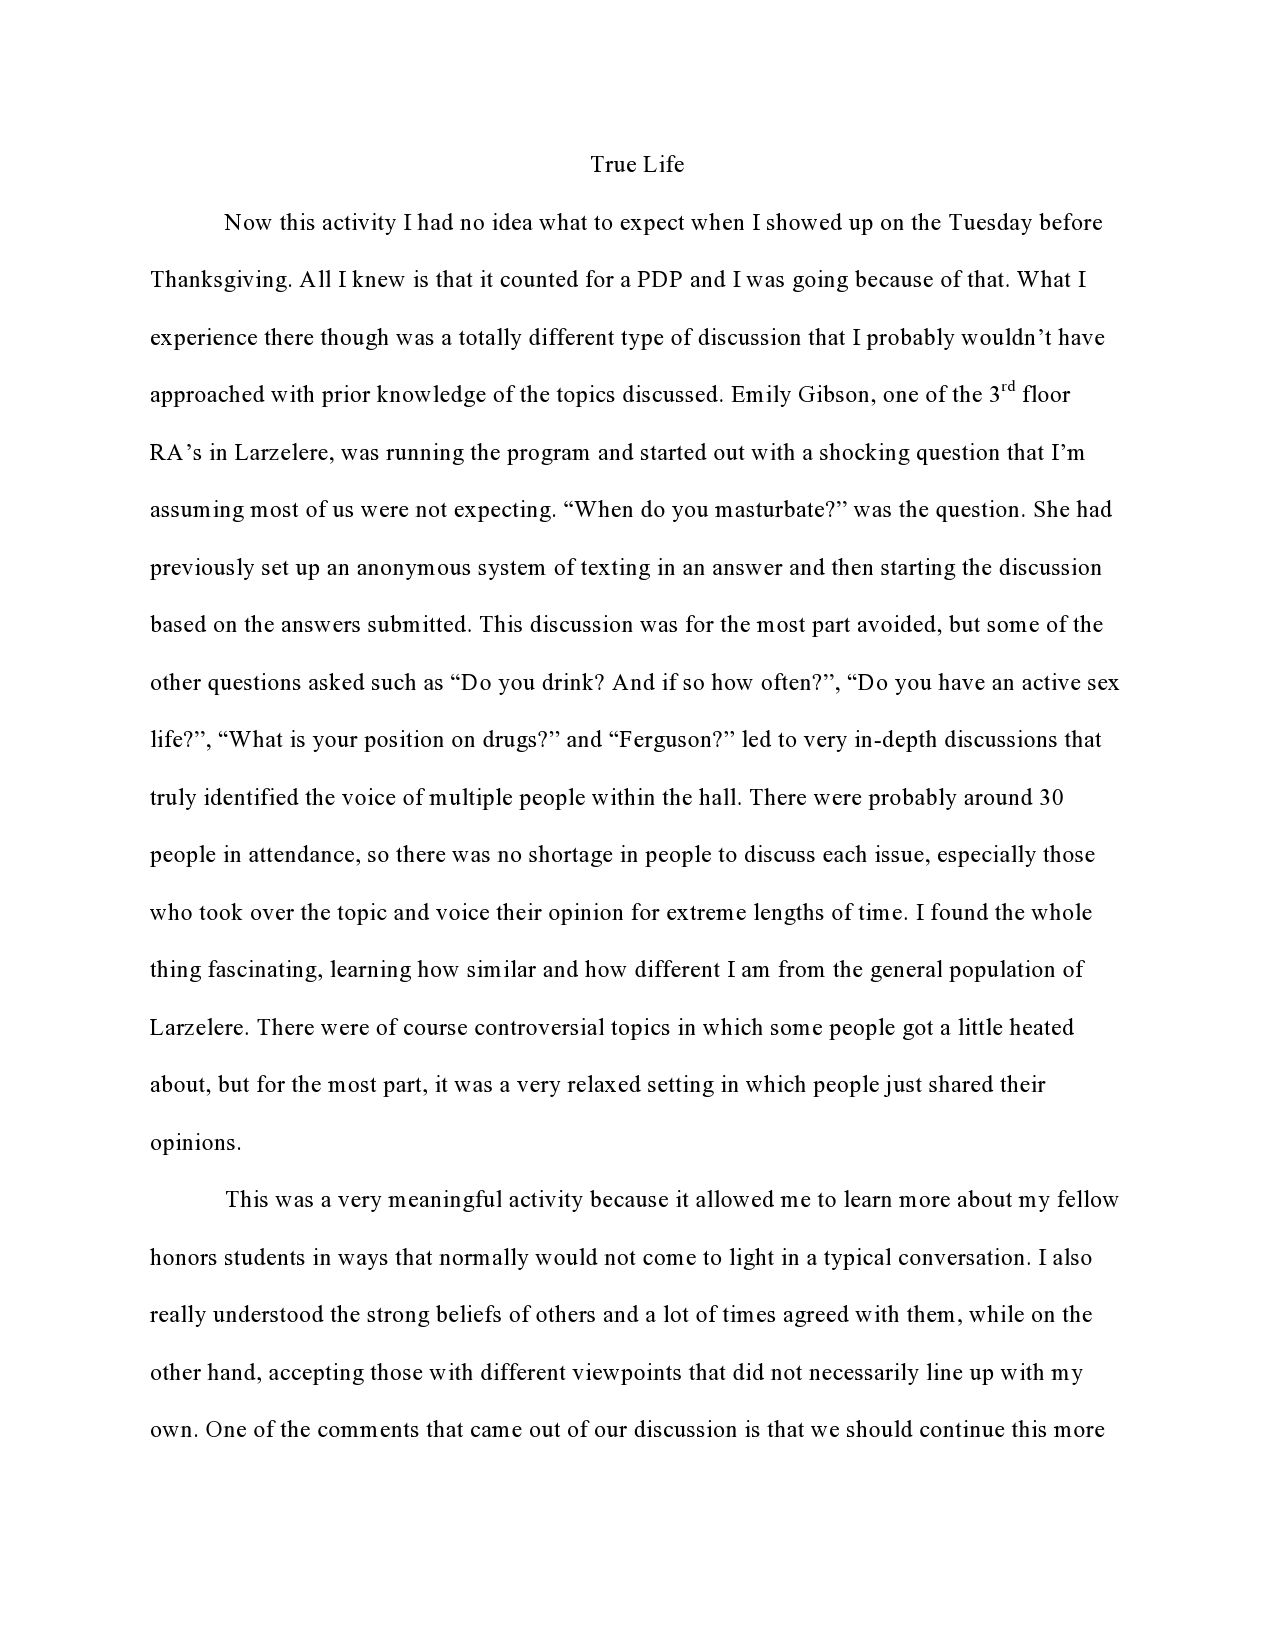 page  of reflection  true life  reflective essay examples  page  of reflection